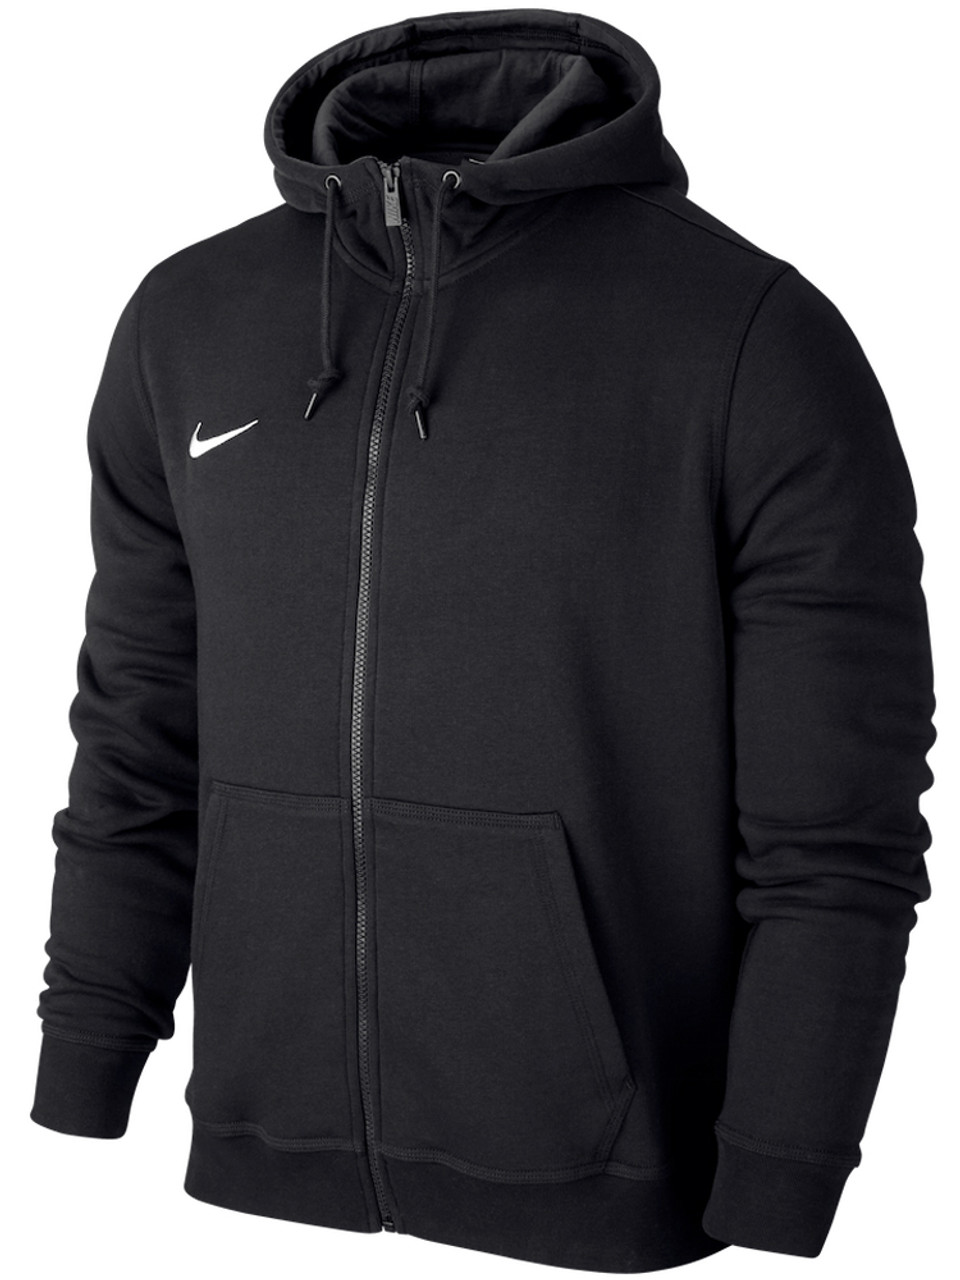 calidad estable conseguir baratas varios tipos de Nike Team Club FZ Hoodie - Black/White | GolfBox